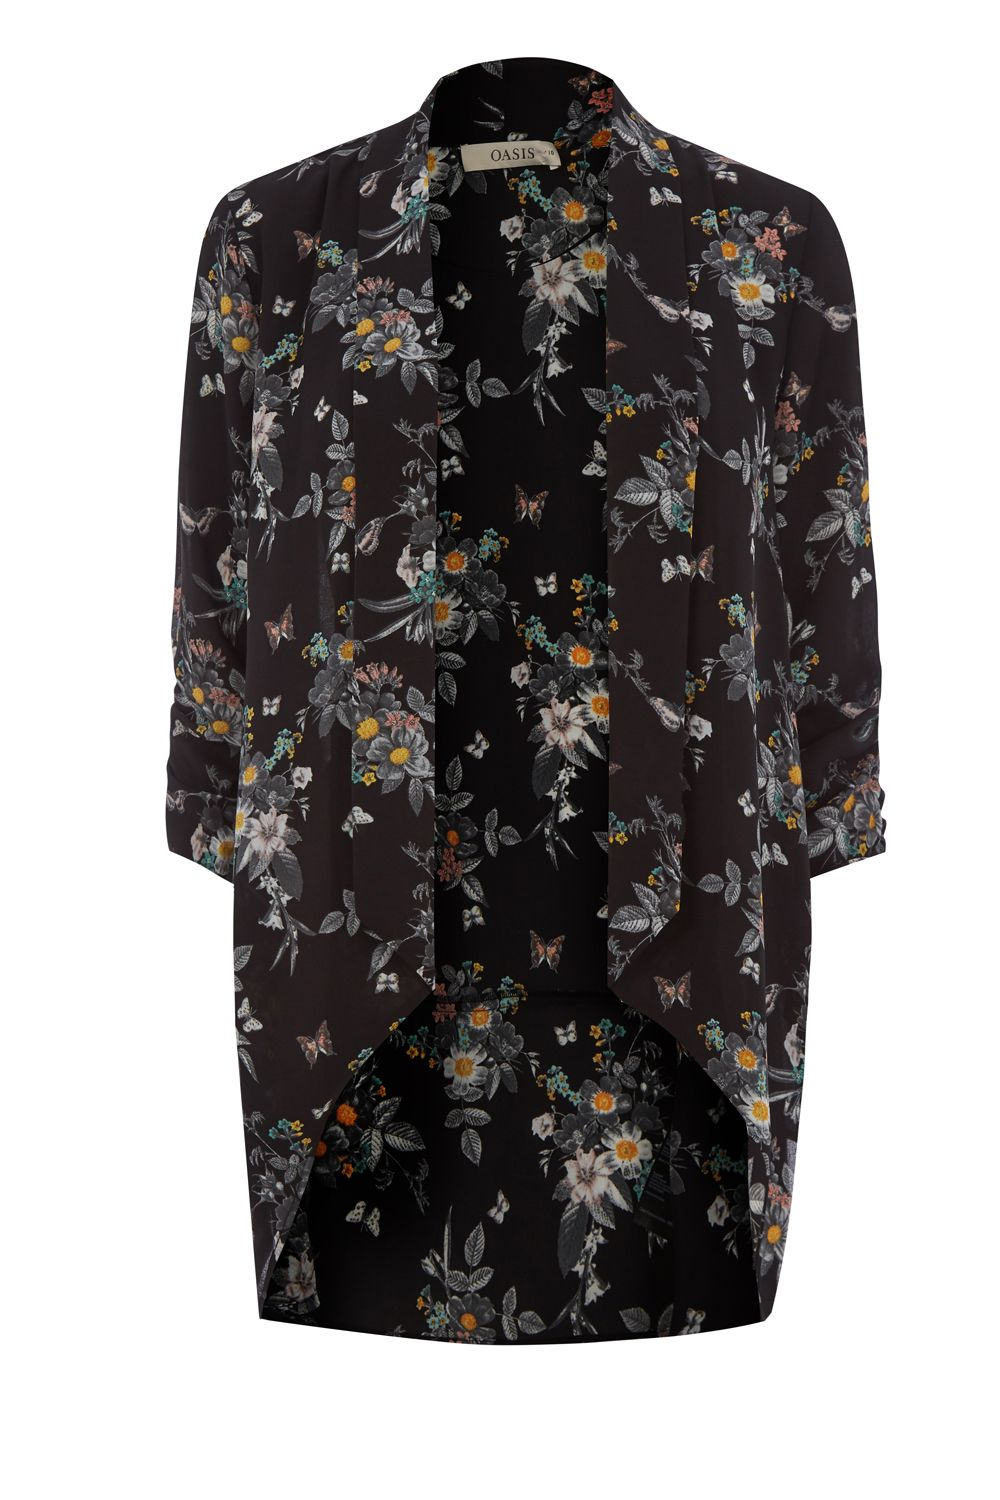 Oasis SHIPWRECKED KIMONO, Multi-Coloured